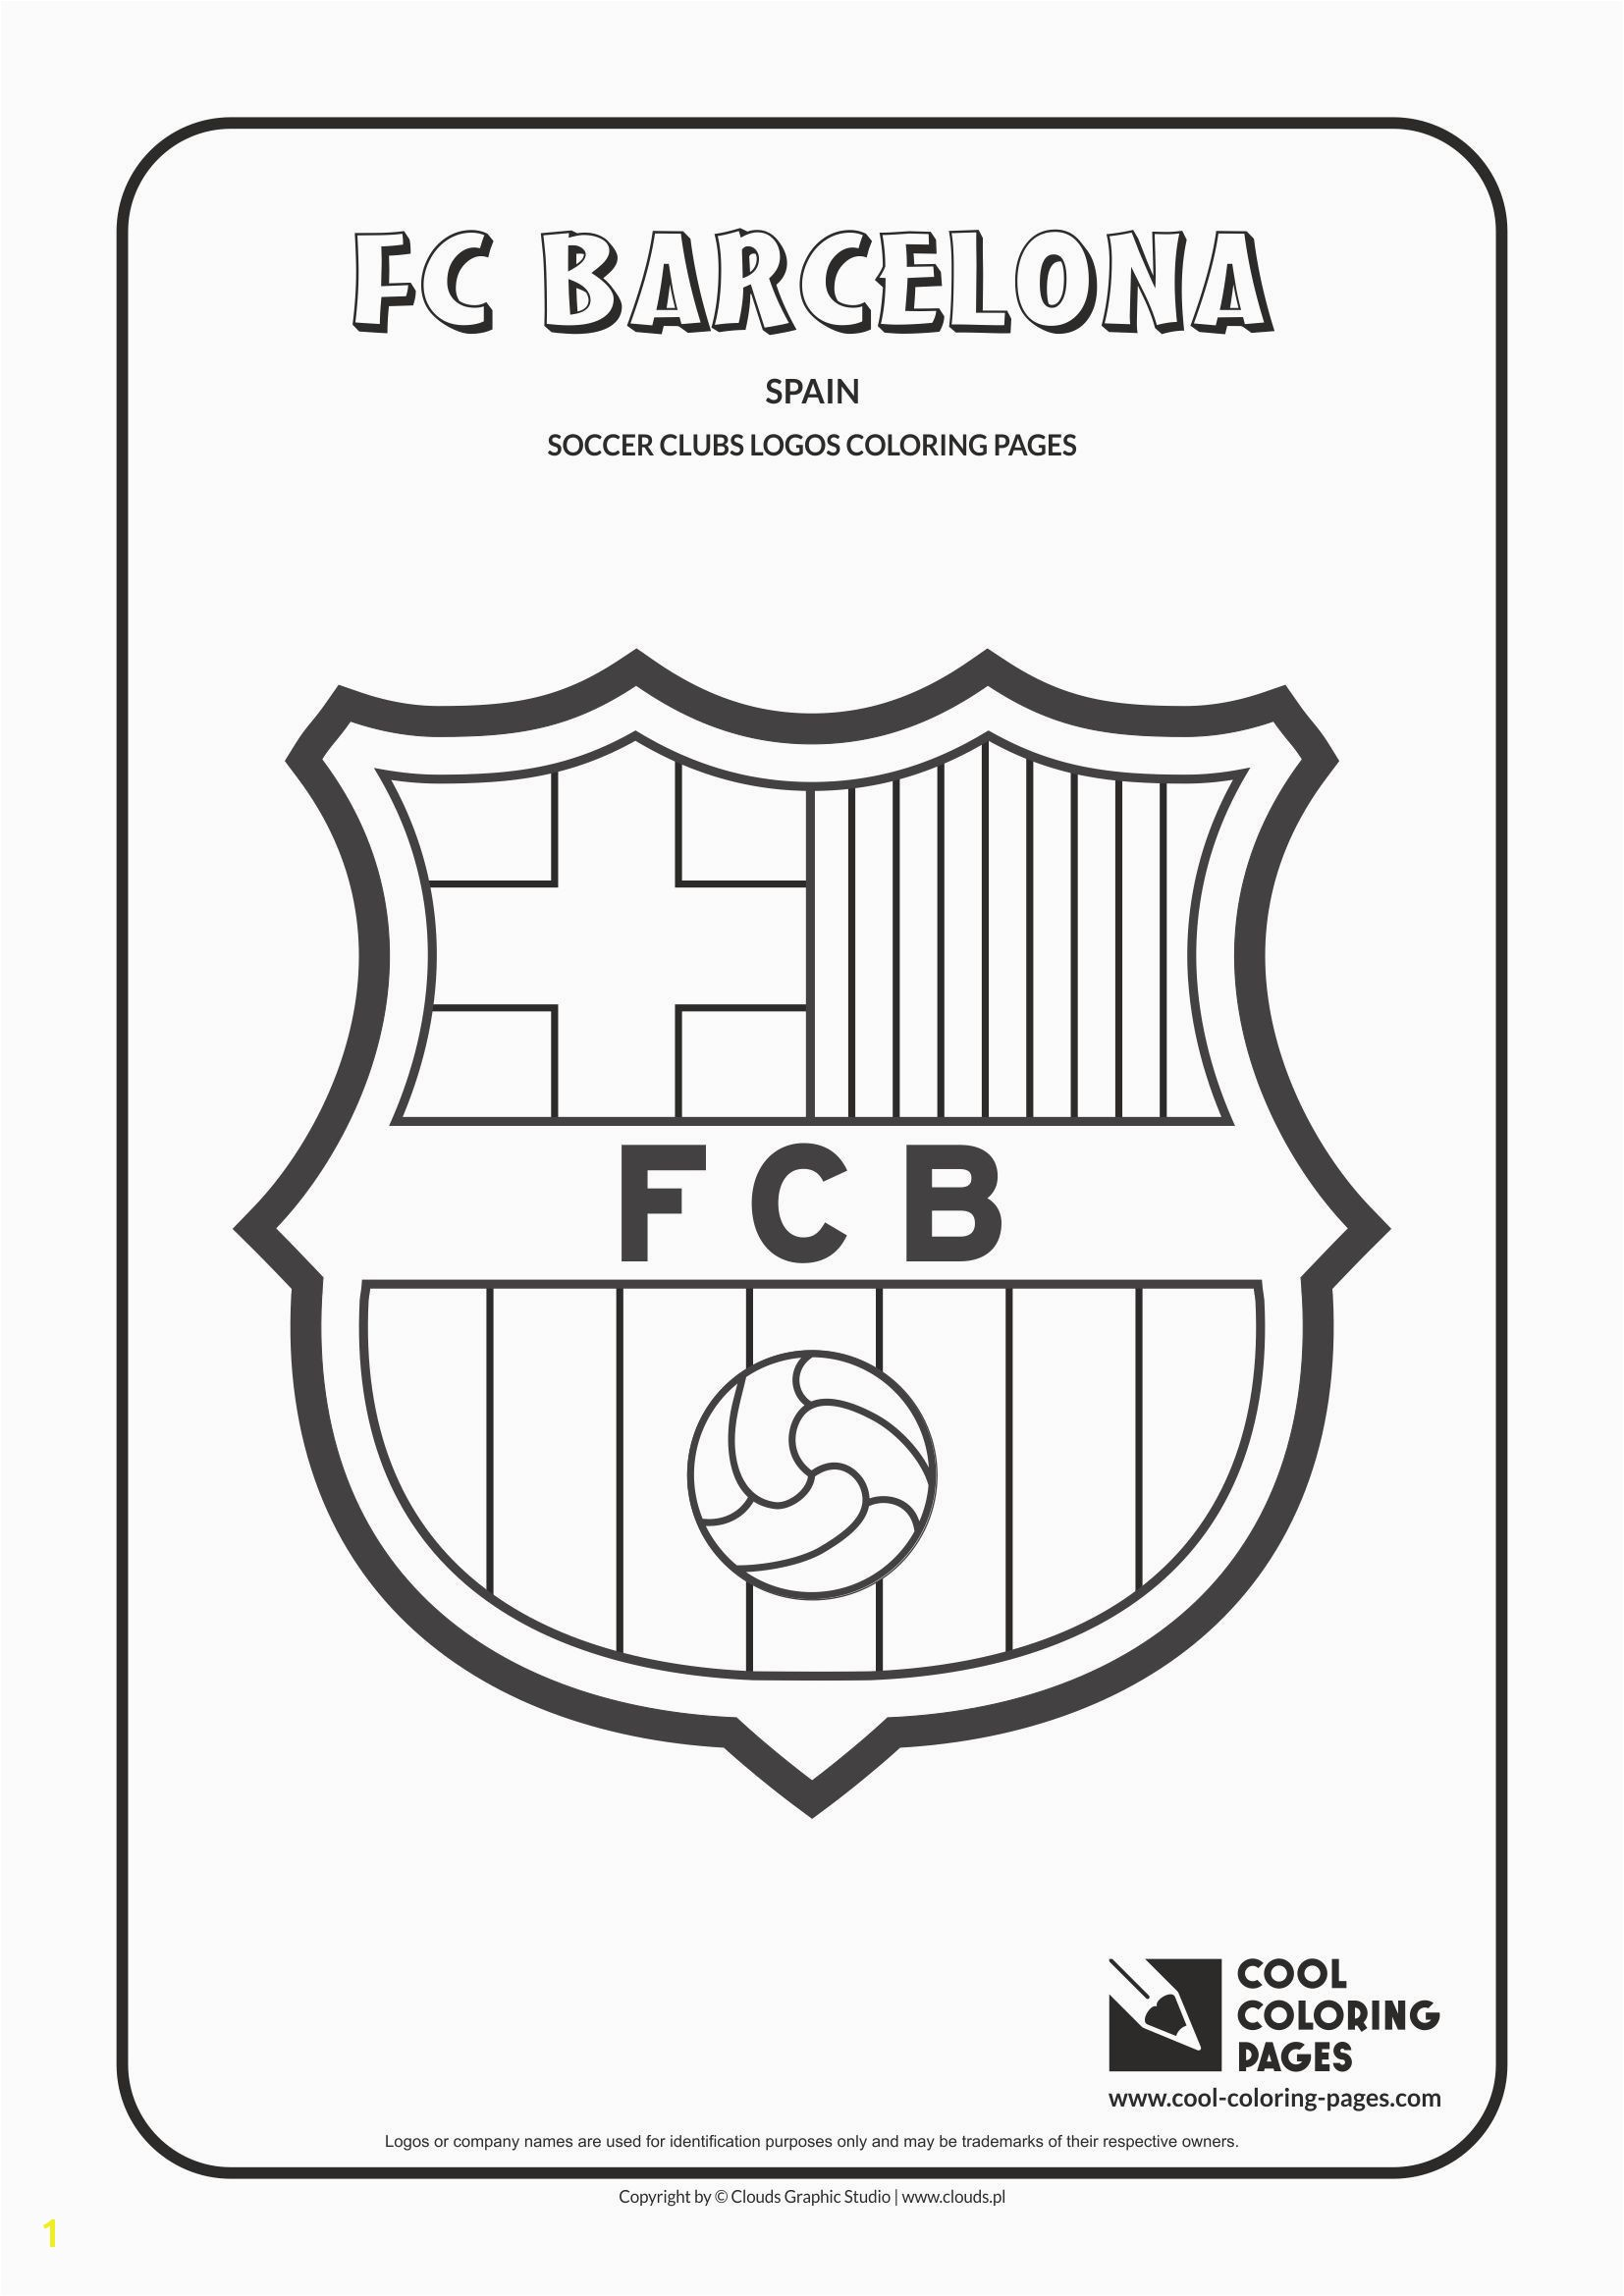 Cool Coloring Pages Others FC Barcelona logo Coloring page with FC Barcelona logo